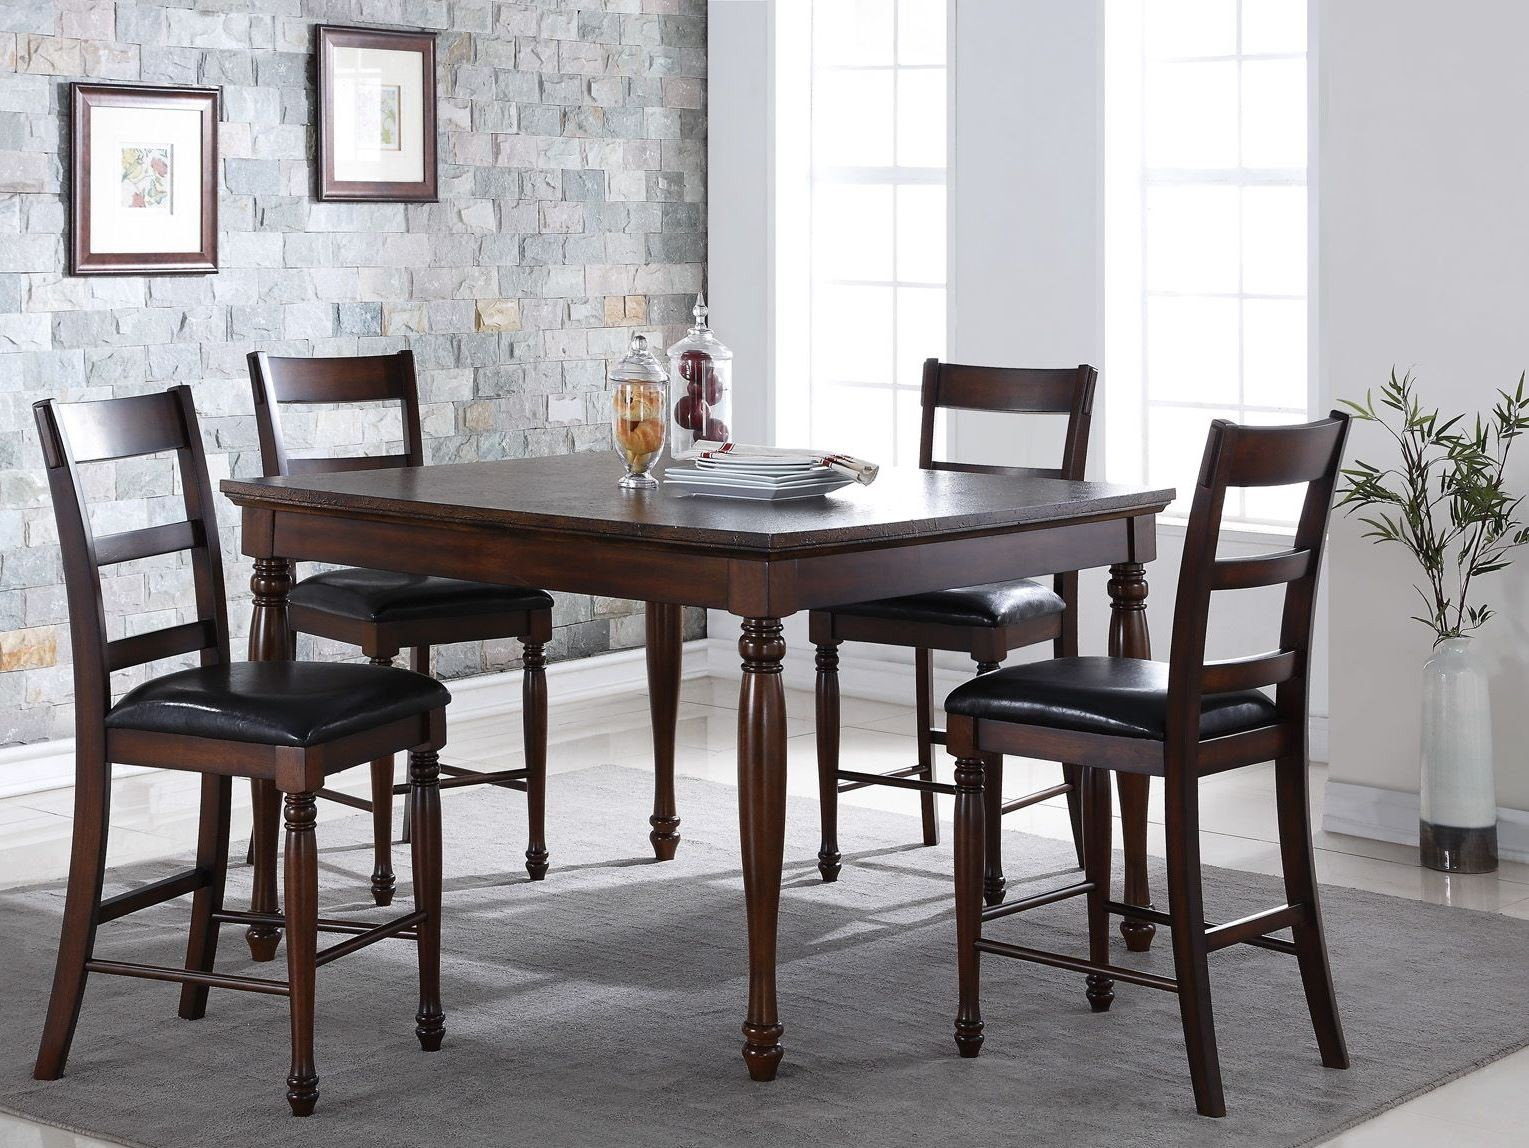 Breckenridge 54 brown counter height dining room set from for Brown dining room set